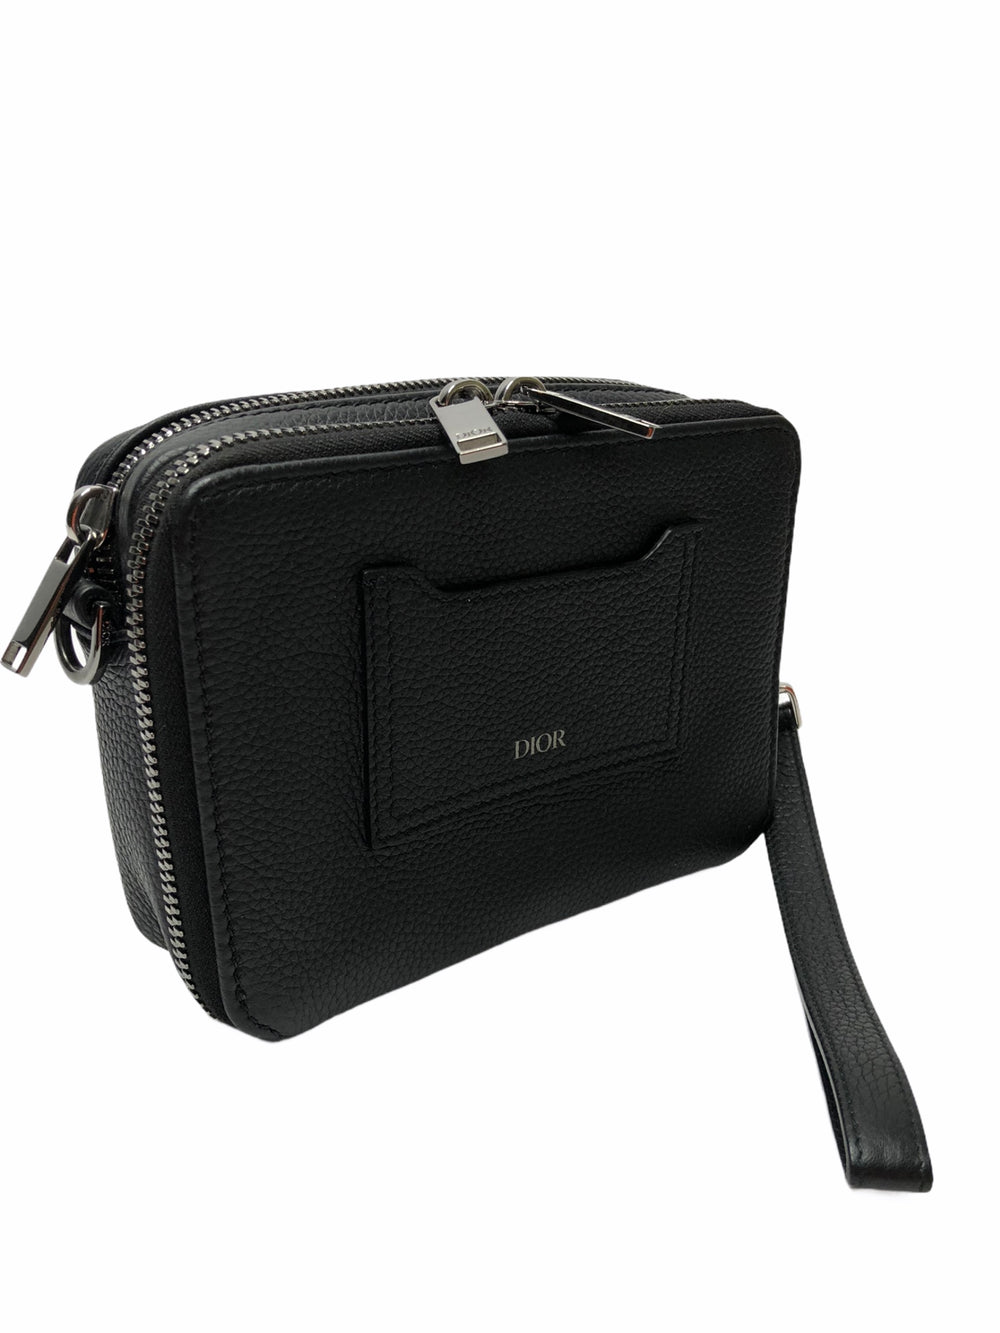 Christian Dior Leather Cosmetic Case  - As Seen on Instagram